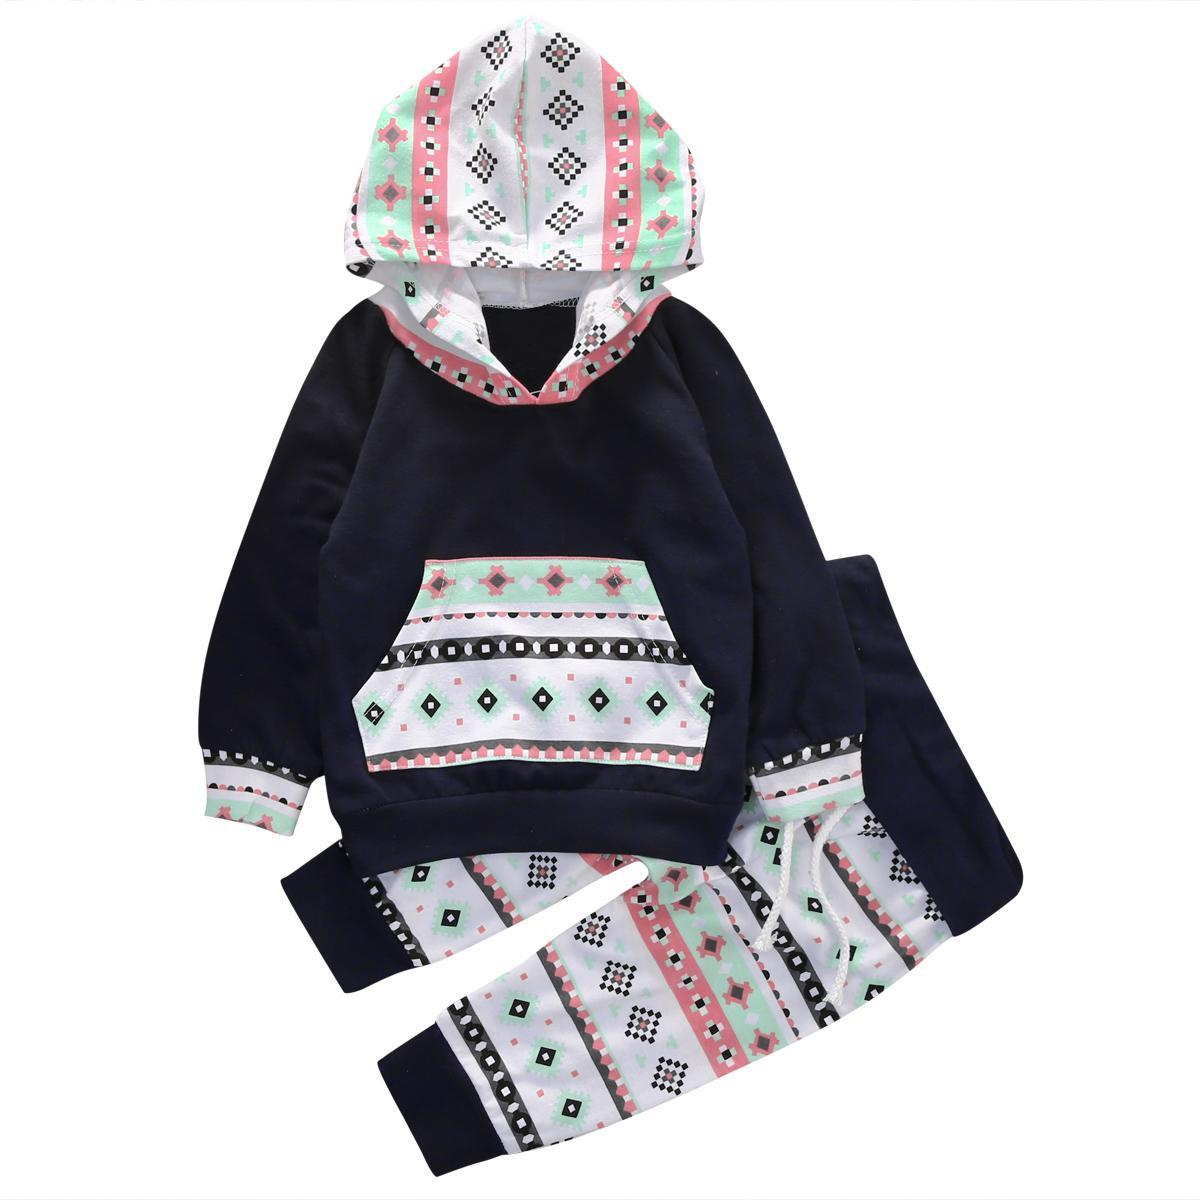 bbbffc97f69b Autumn Style Infant Clothes Baby Clothing Sets Baby Boys Girls Tops ...